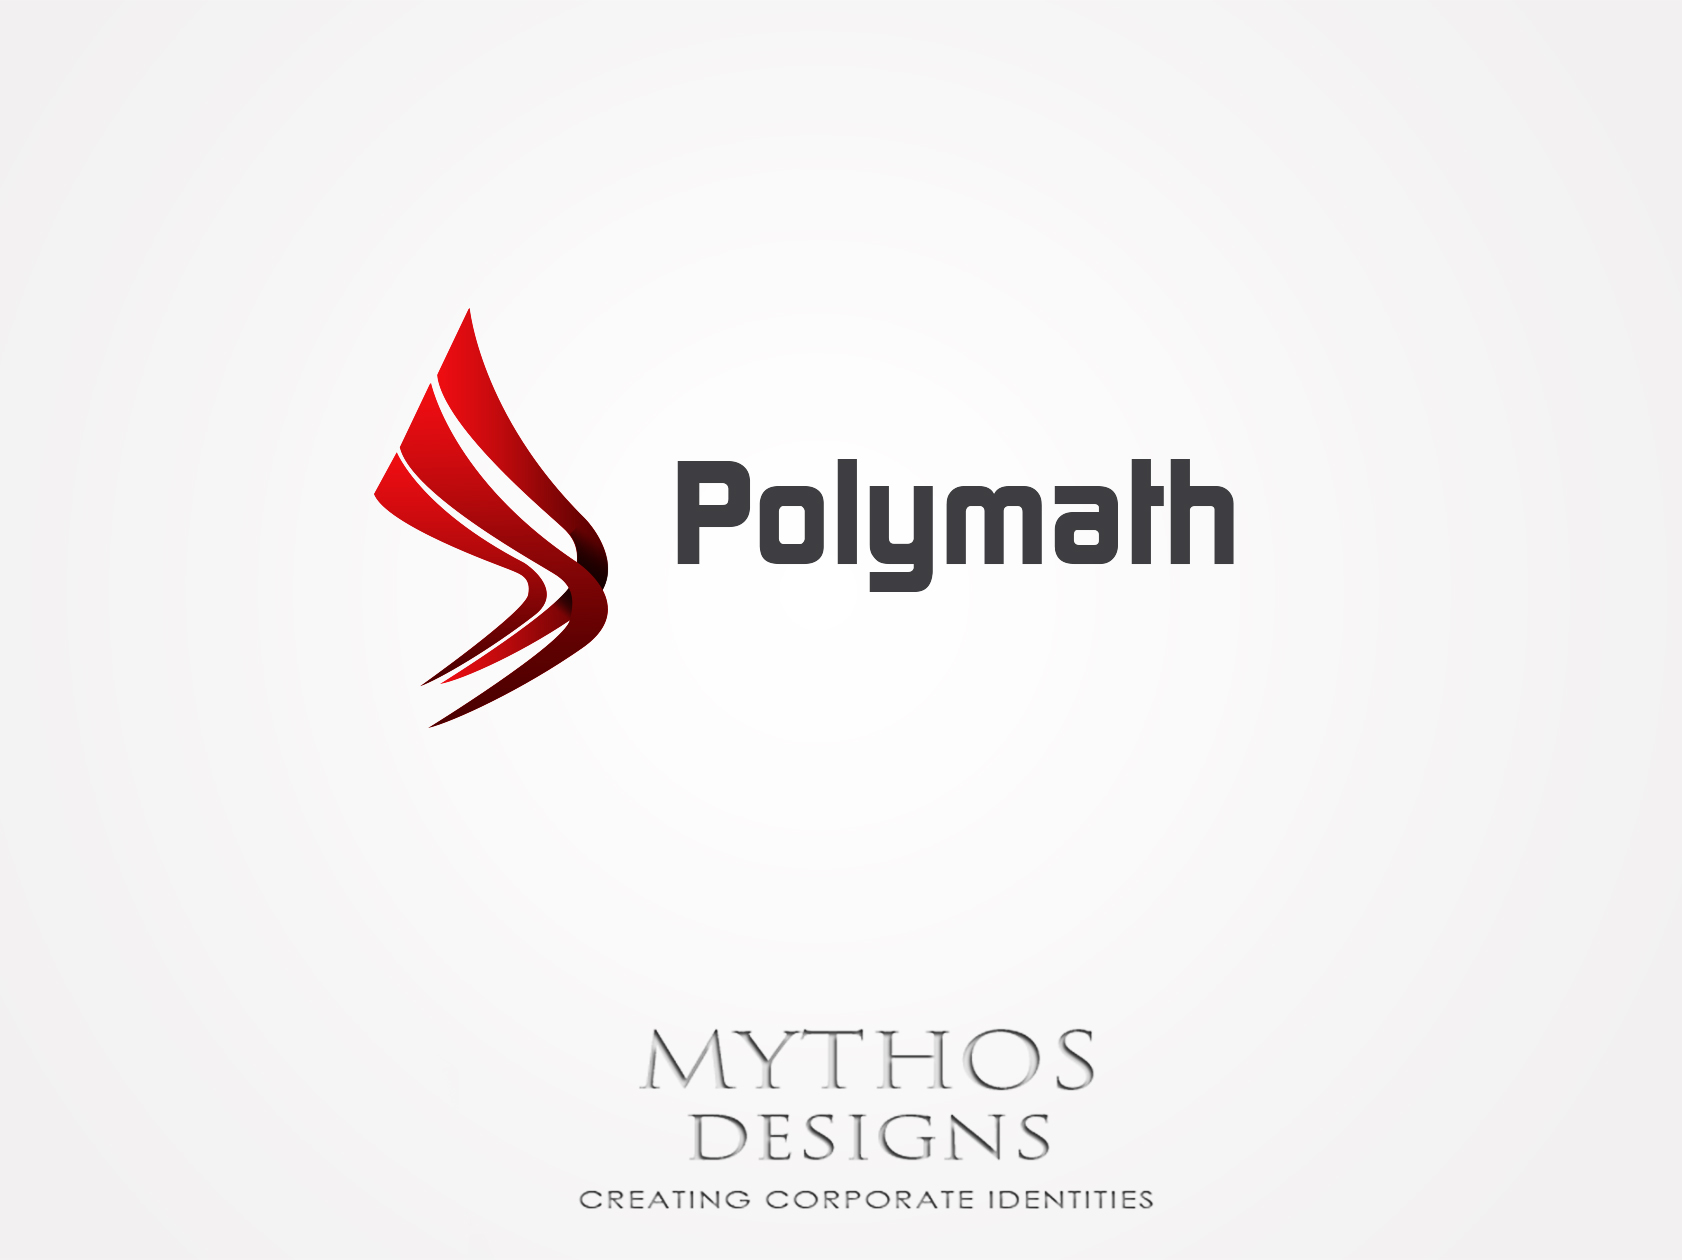 Logo Design by Mythos Designs - Entry No. 30 in the Logo Design Contest Imaginative Logo Design for Polymath.